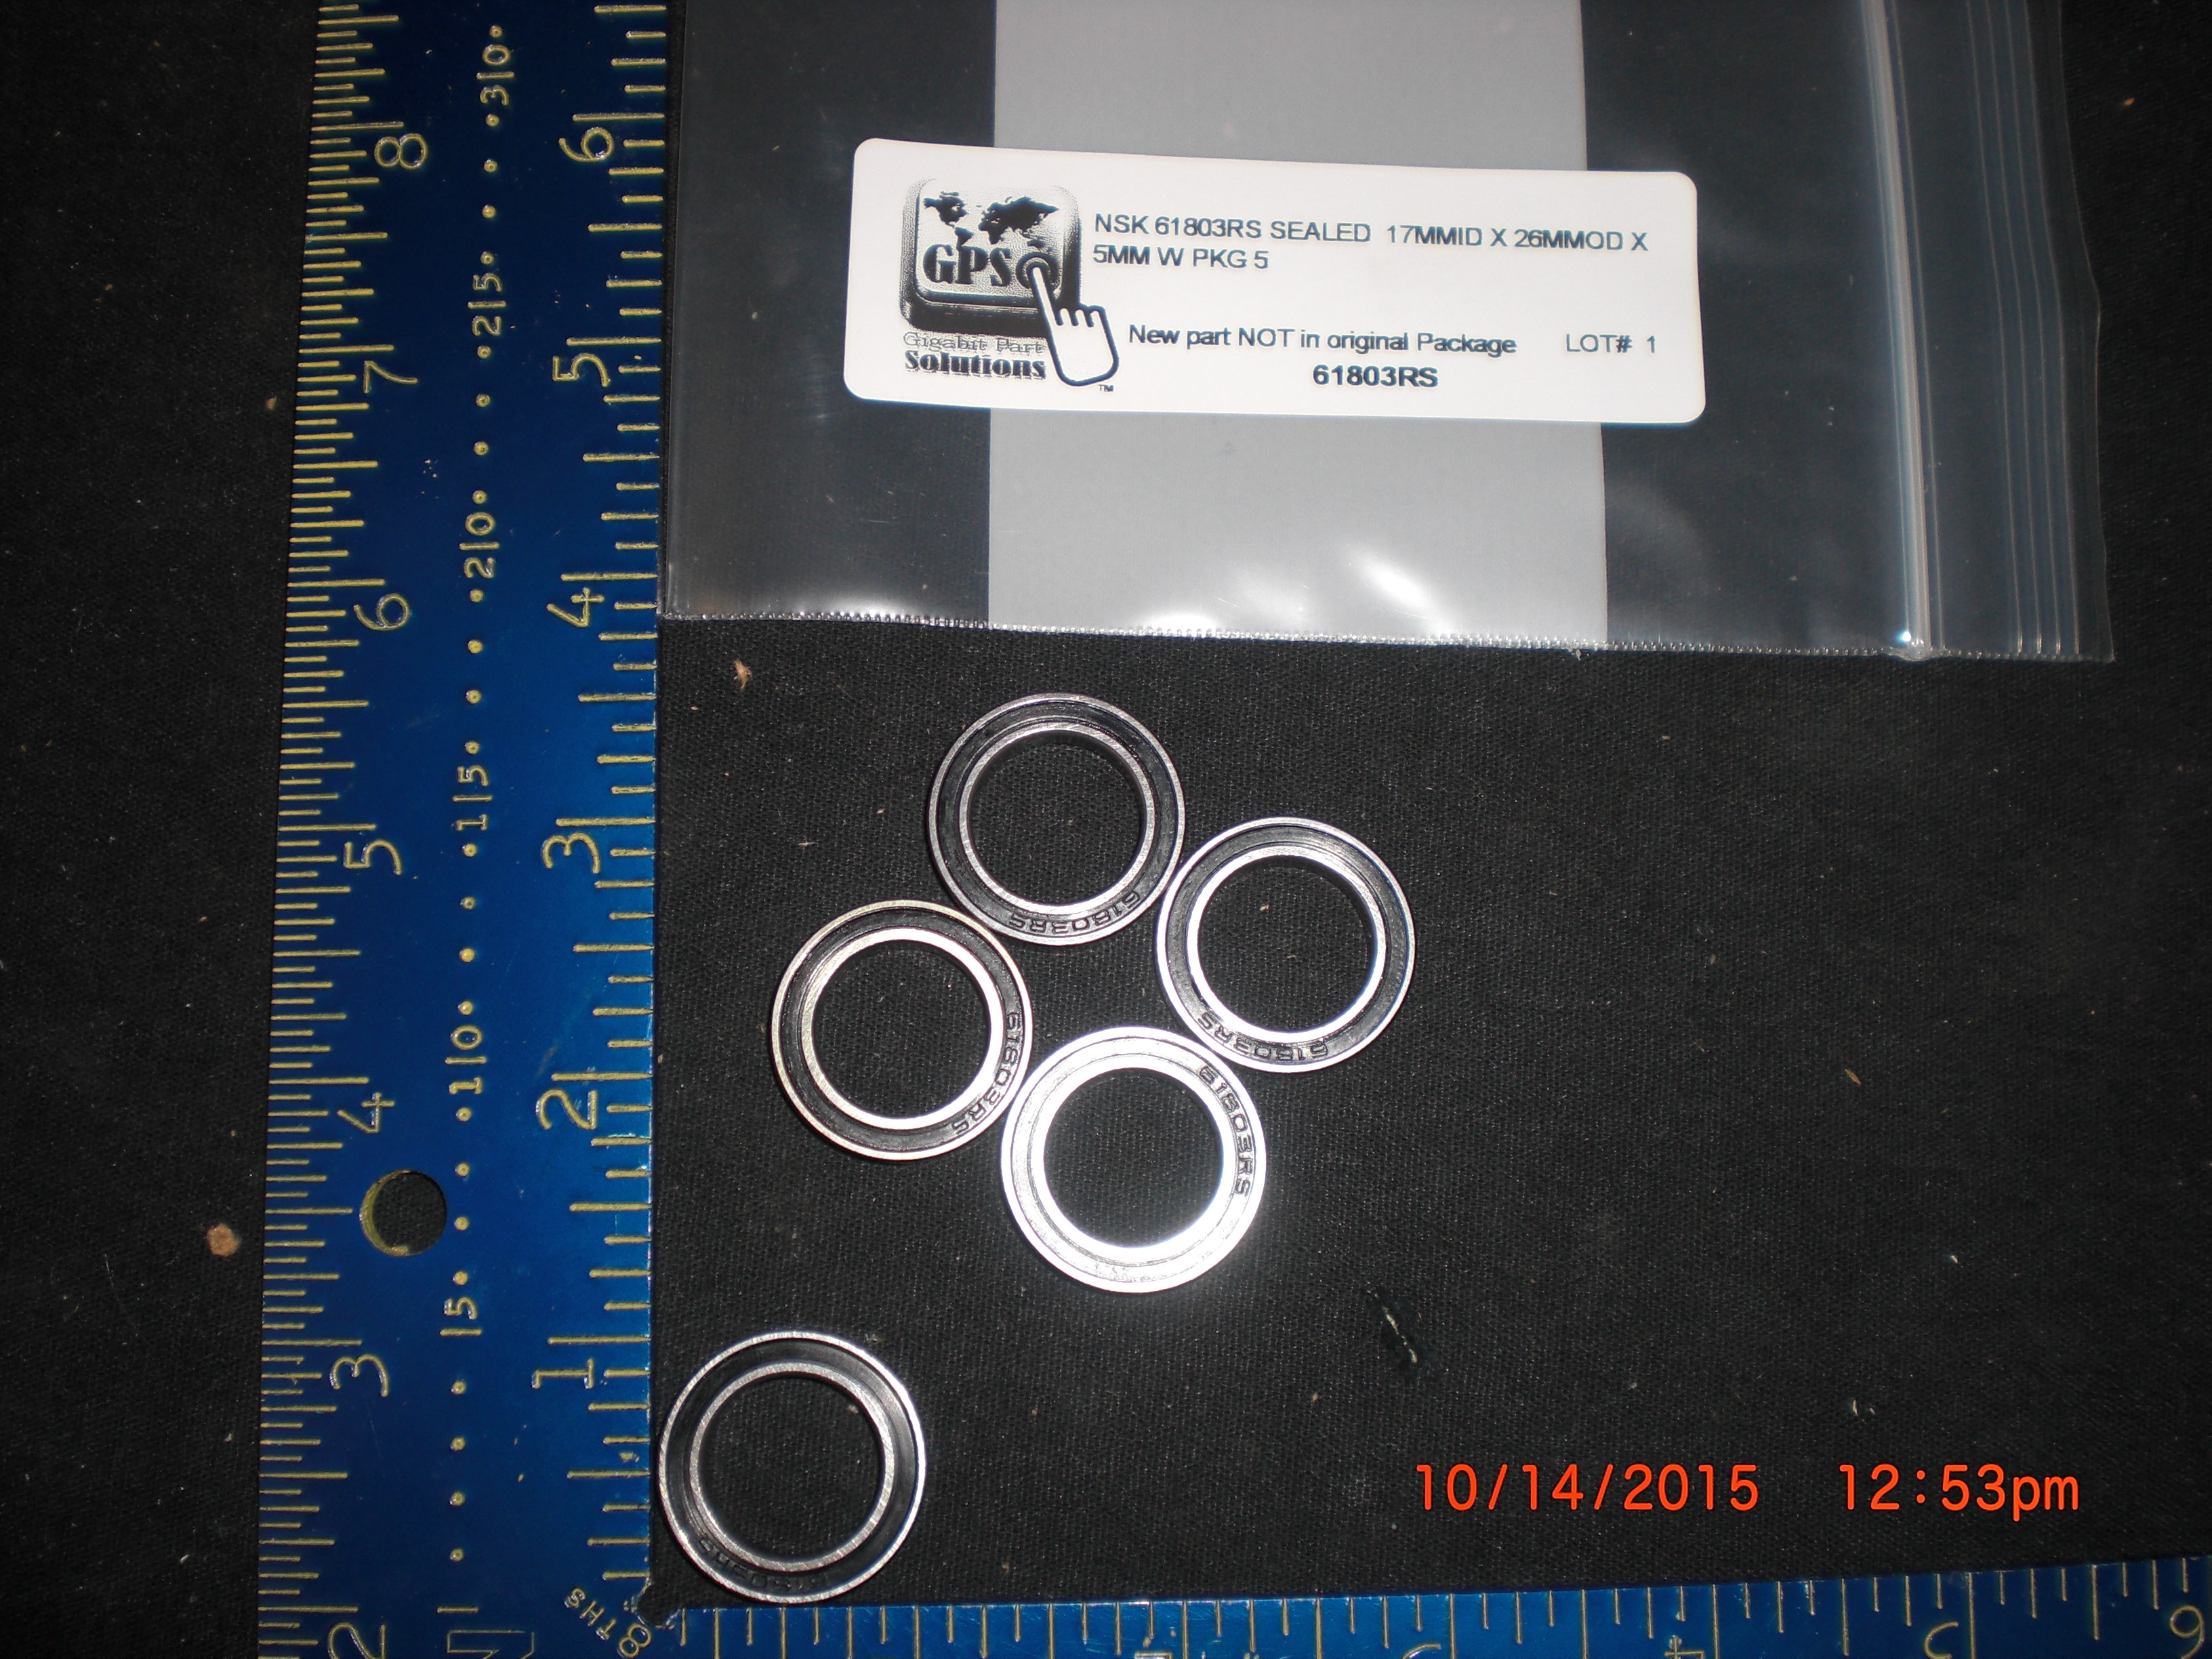 Bearing NSK 61803RS sealed  17mmID X 26mmOD X 5mm W PKG 5